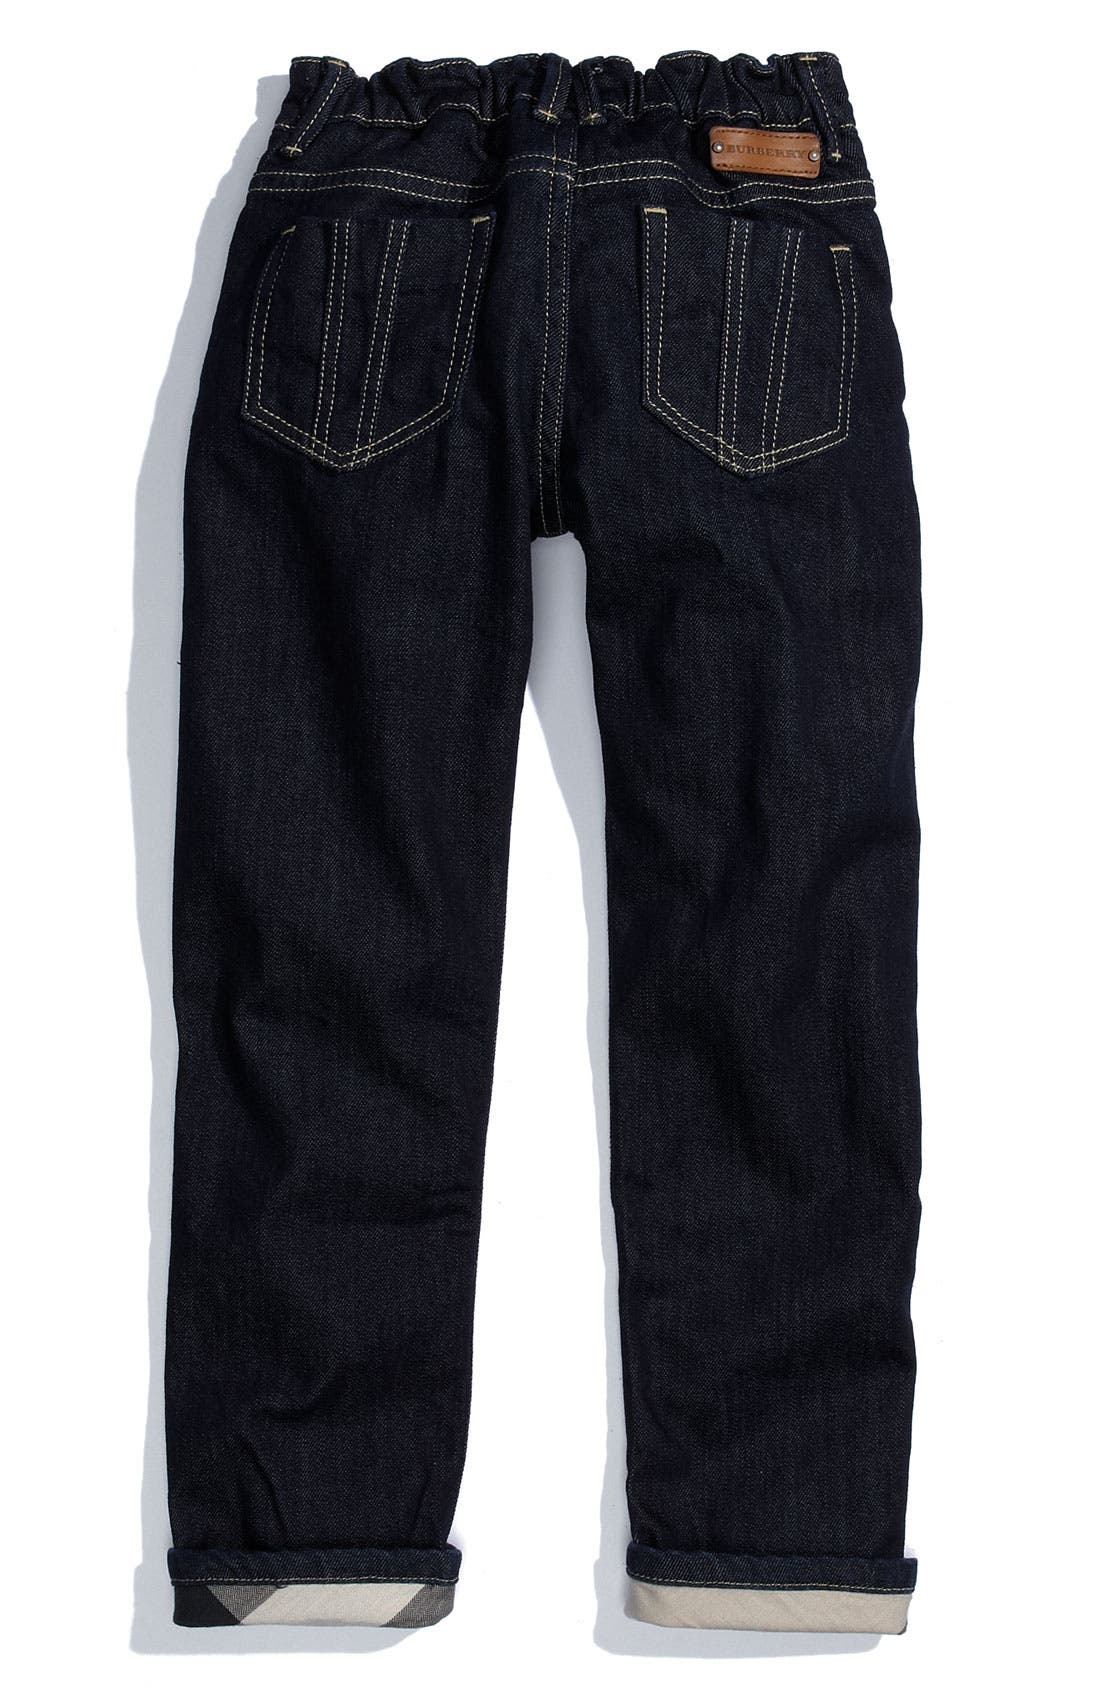 Alternate Image 1 Selected - Burberry Cuff Jeans (Little Girls)